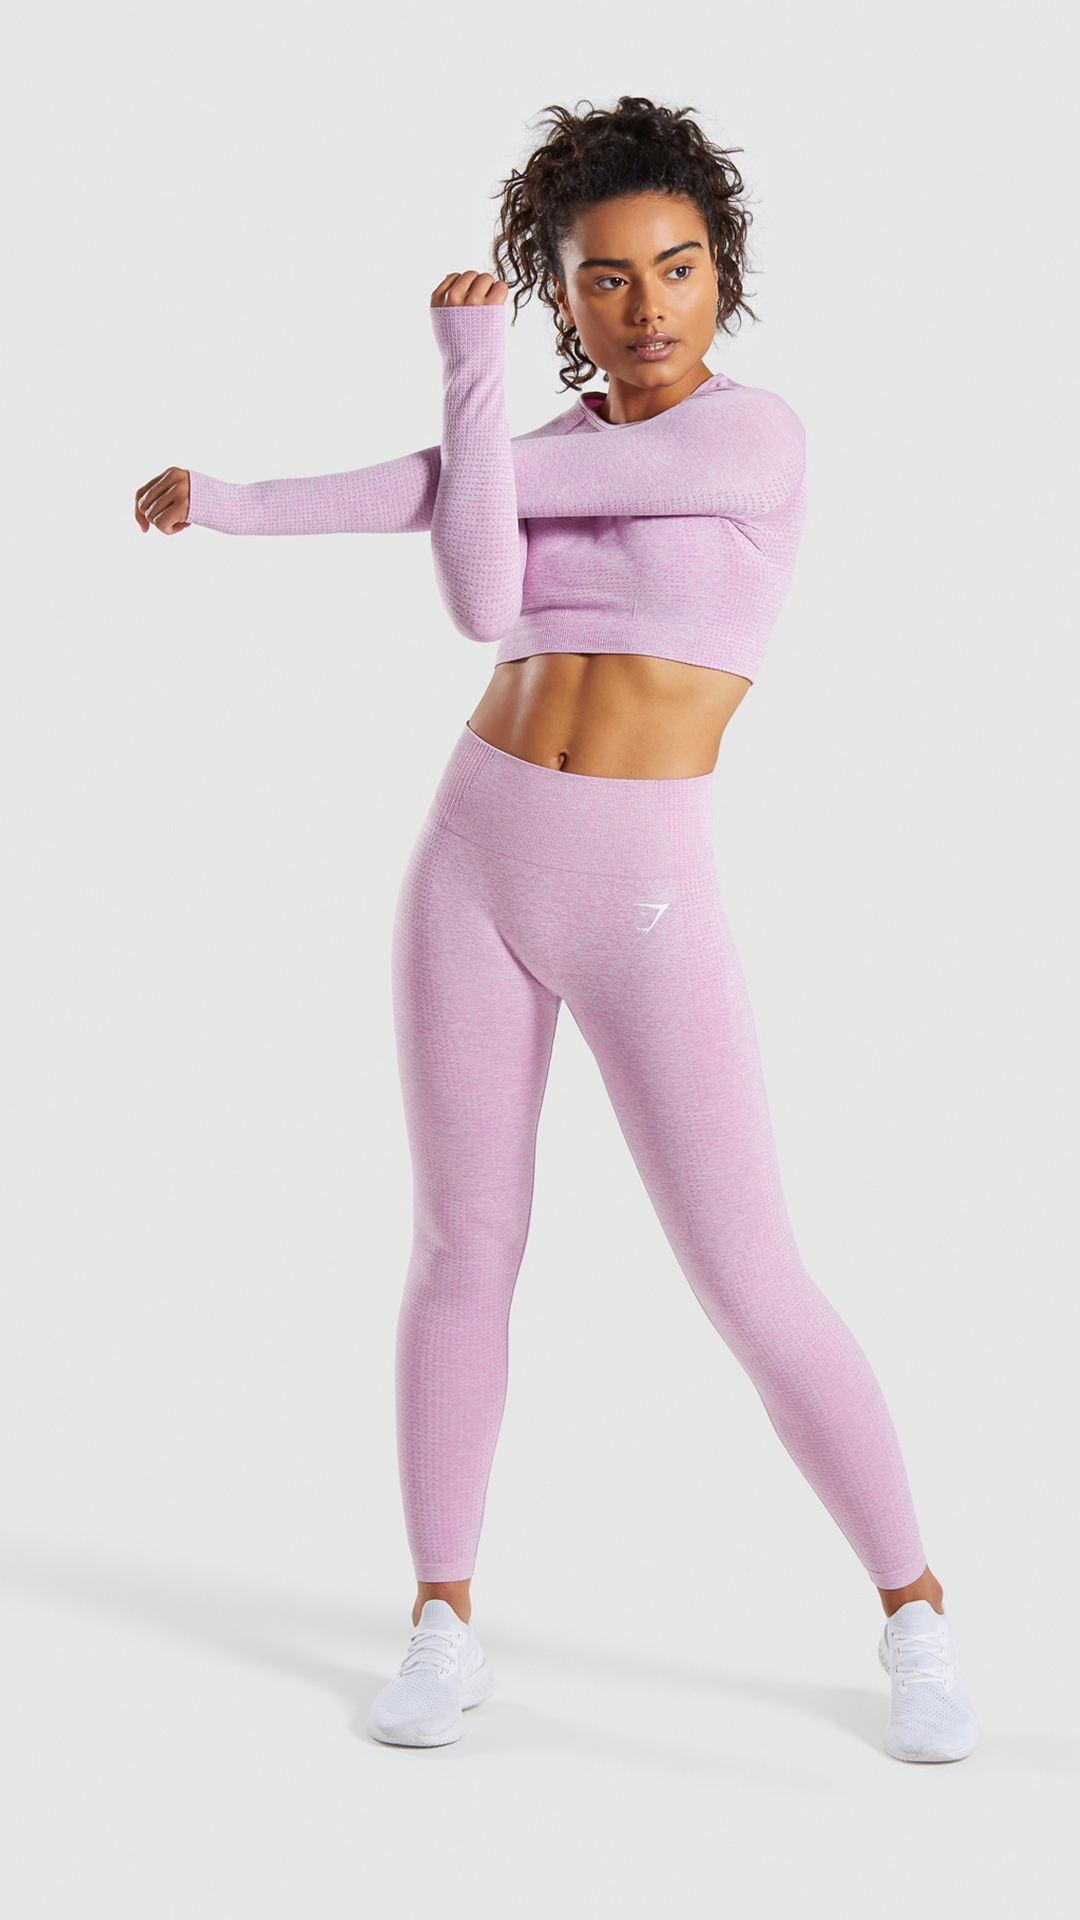 8bdb0b996e6c9 The Vital Seamless Leggings, Pastel Grape Marl. With a high waisted fit,  supportive